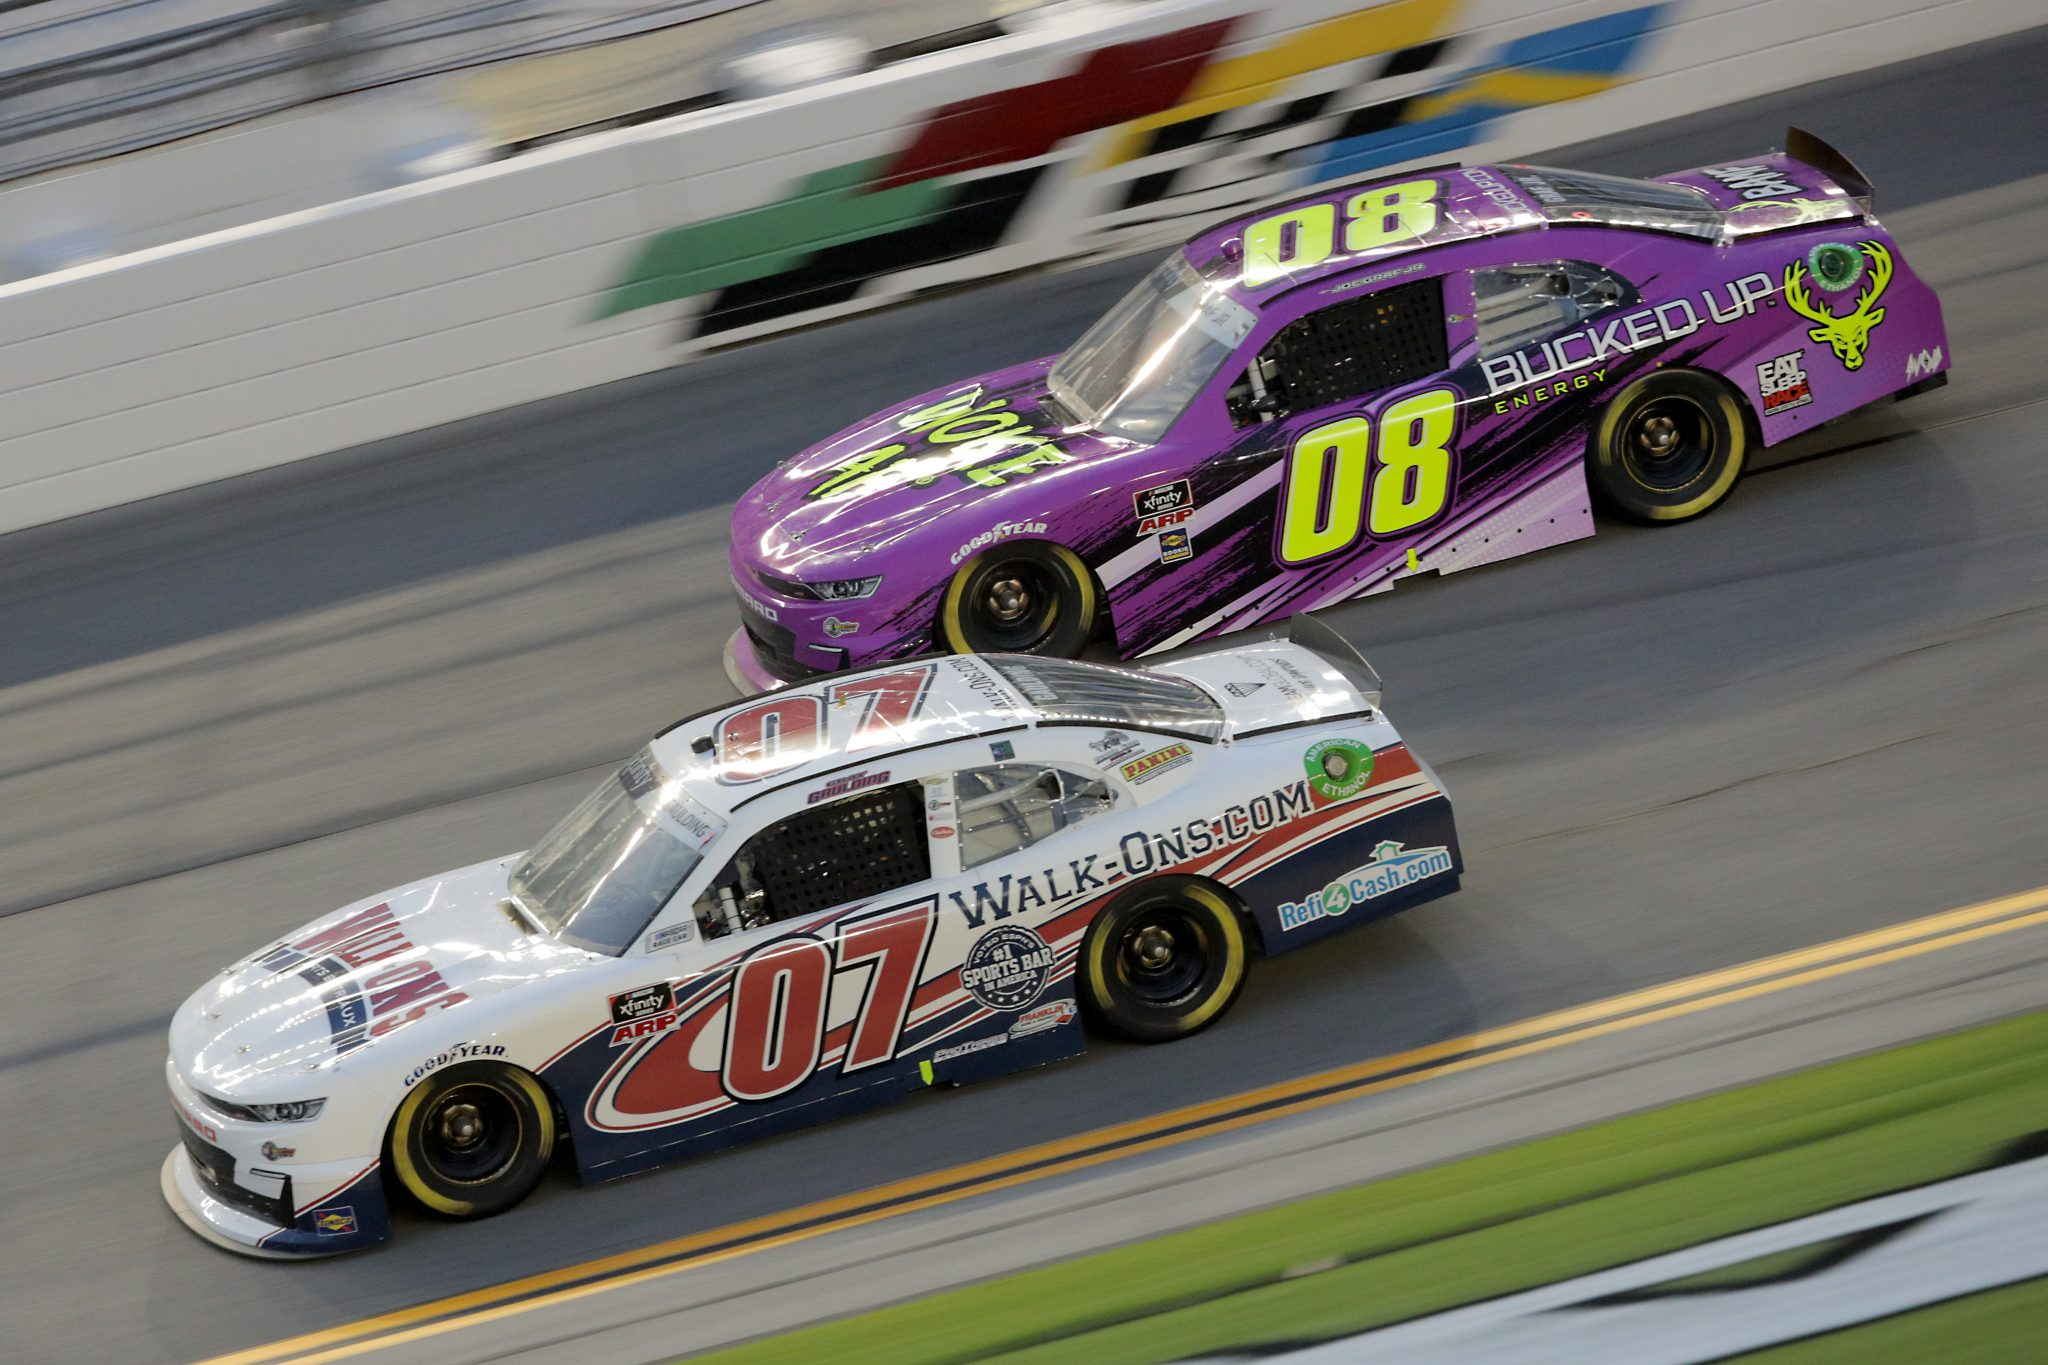 DAYTONA BEACH, FLORIDA - AUGUST 28: Gray Gaulding, driver of the #07 Chevrolet, and Joe Graf Jr., driver of the #08 Bucked Up Chevrolet, race during the NASCAR Xfinity Series Wawa 250 Powered by Coca-Cola at Daytona International Speedway on August 28, 2020 in Daytona Beach, Florida. (Photo by Chris Graythen/Getty Images) | Getty Images